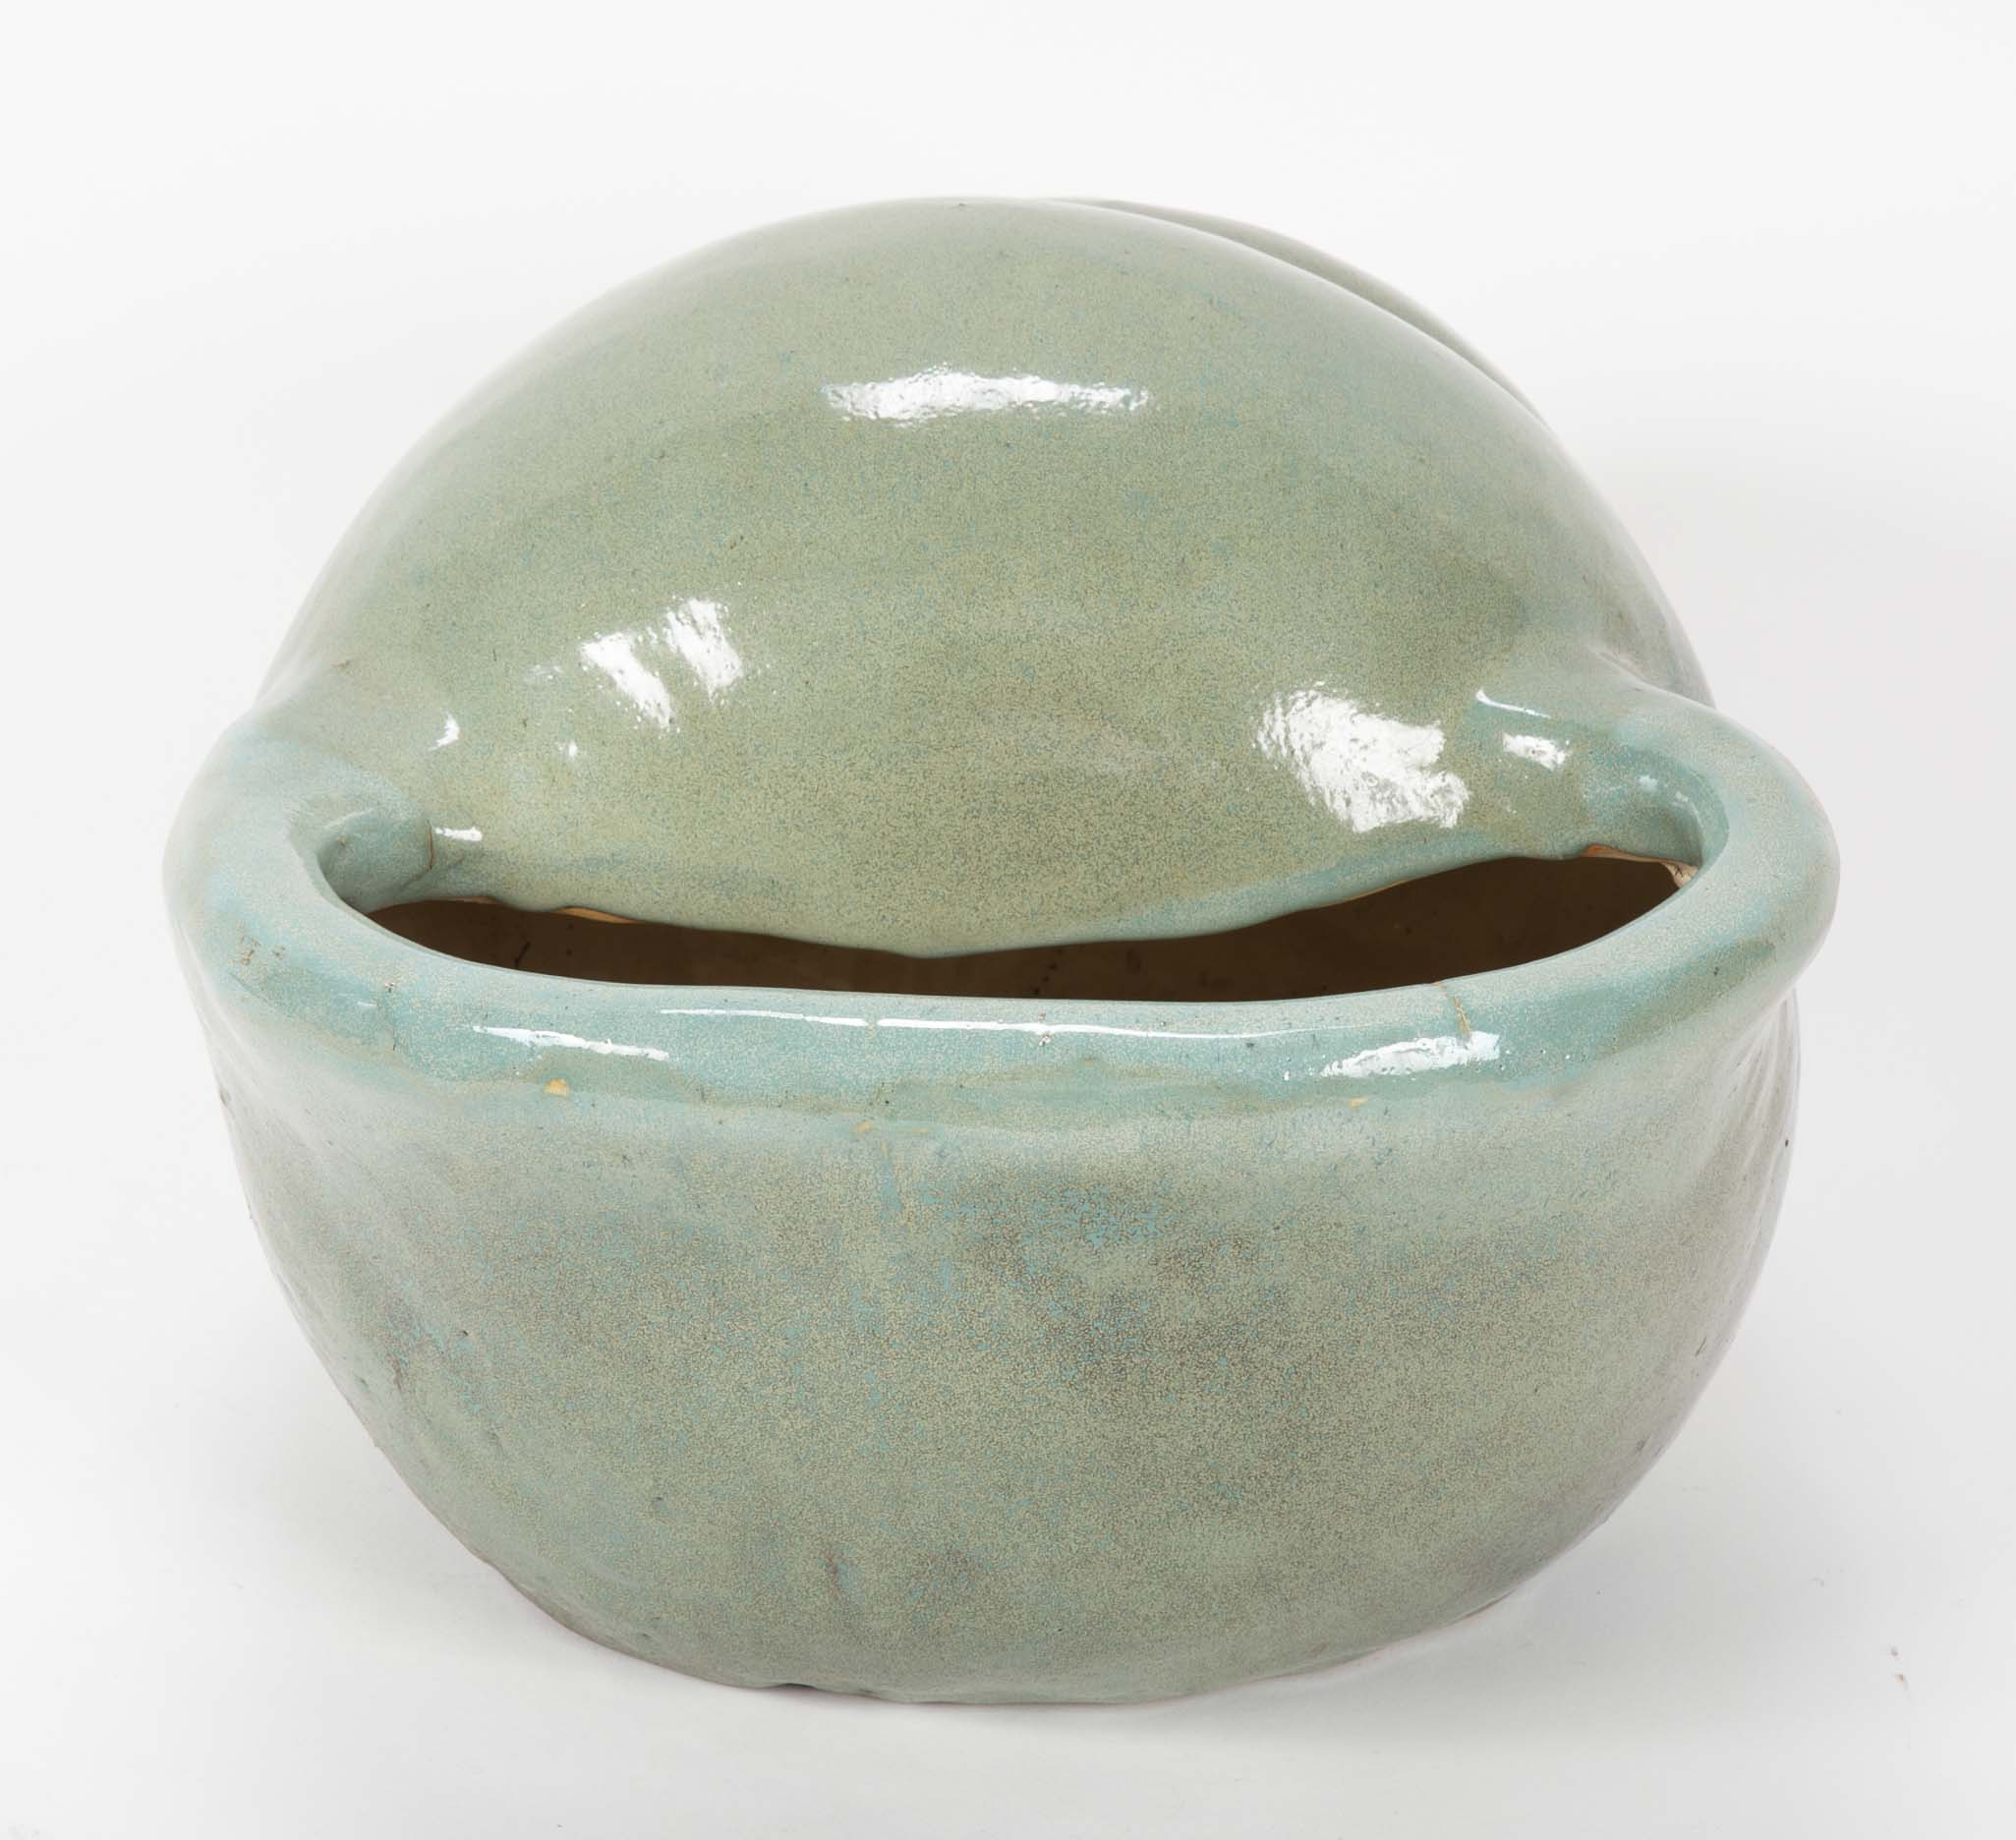 Shell Form American Art Pottery Planter